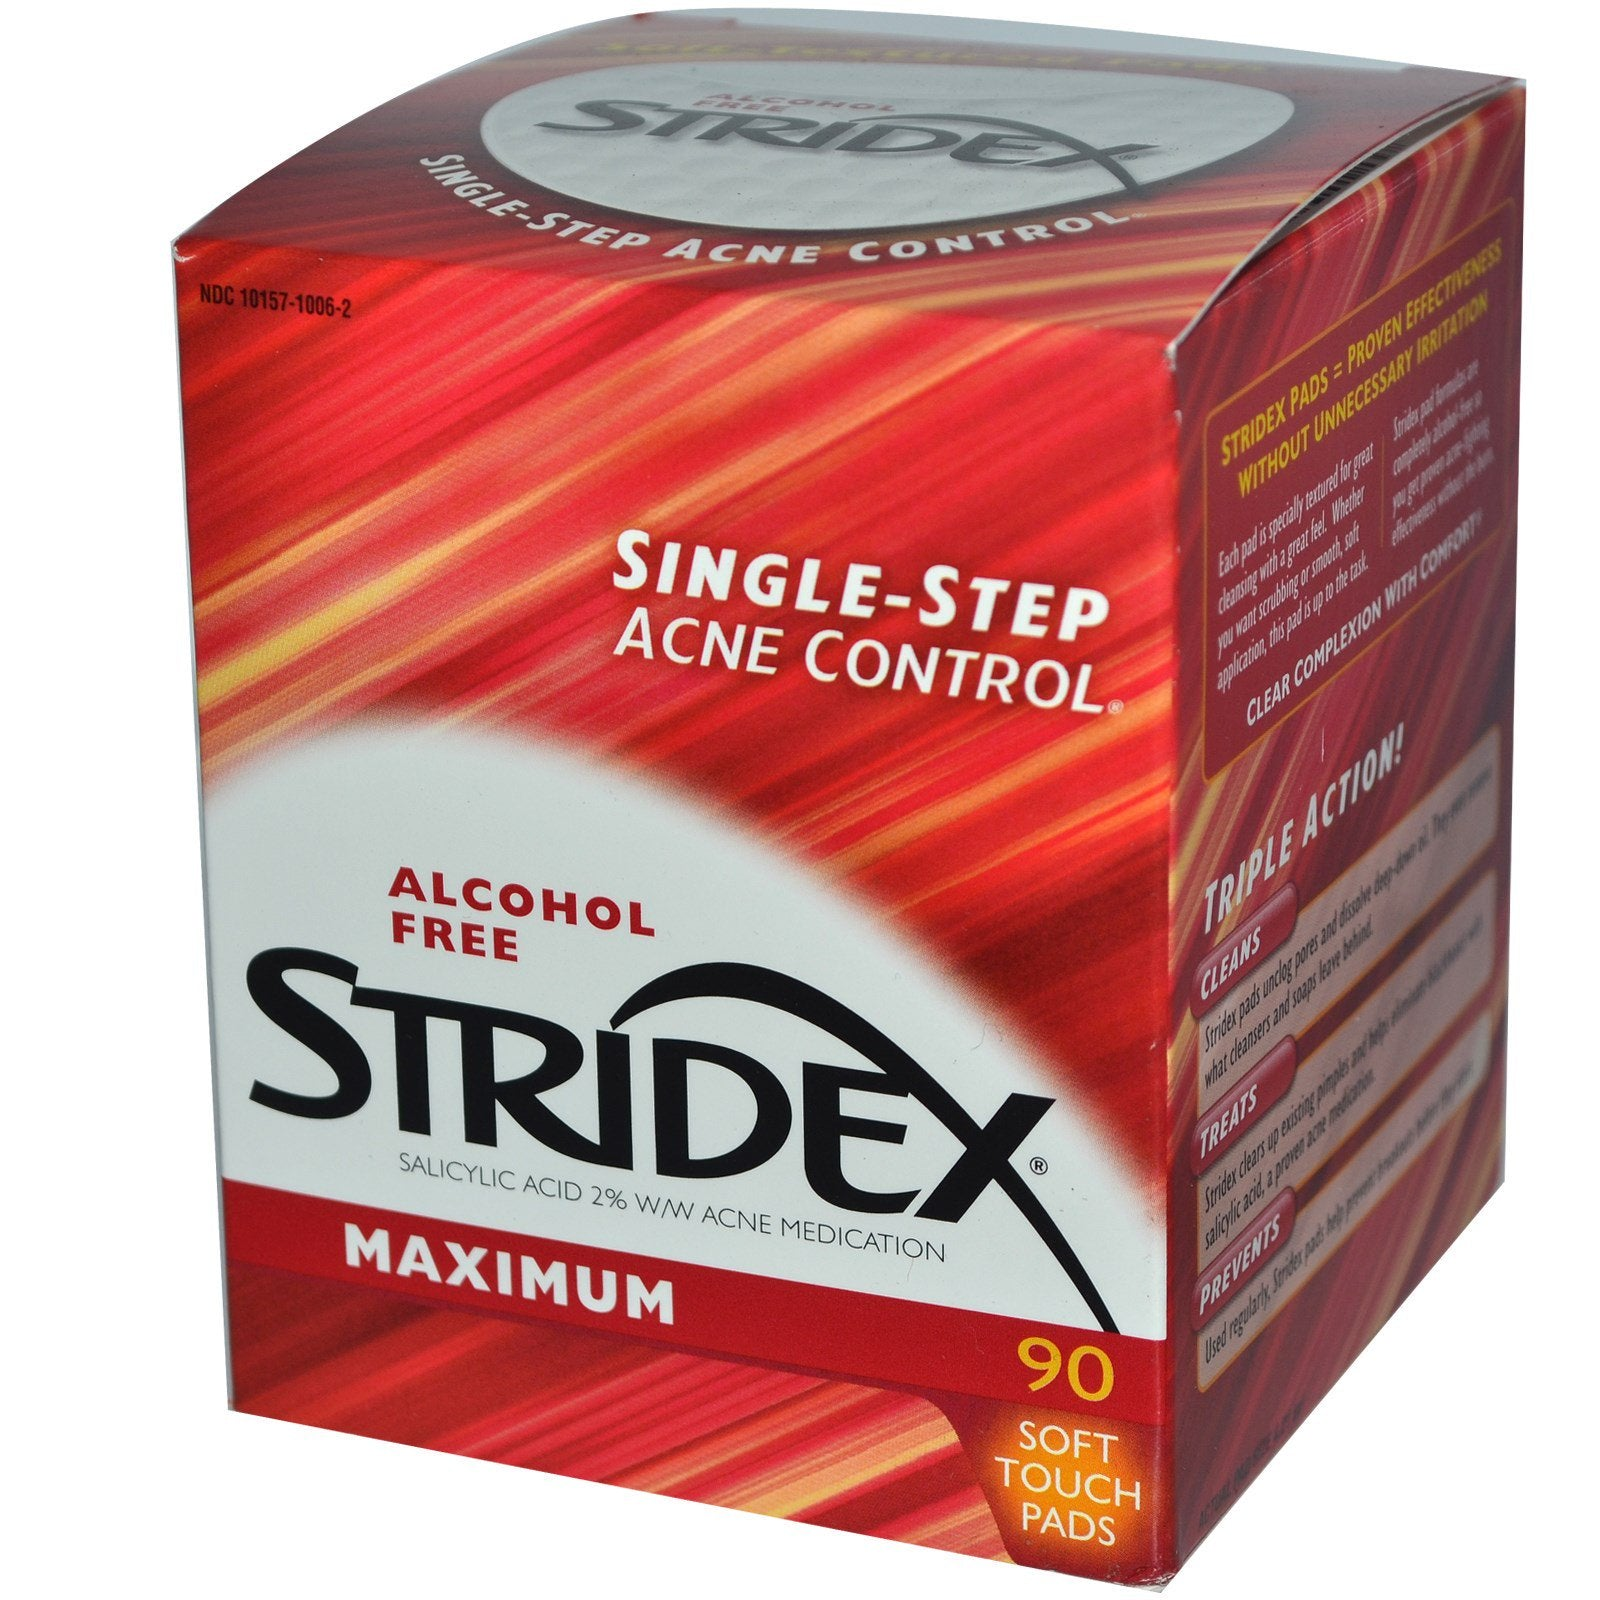 Stridex, Single-Step Acne Control, Maximum, Alcohol Free, Soft Touch Pads